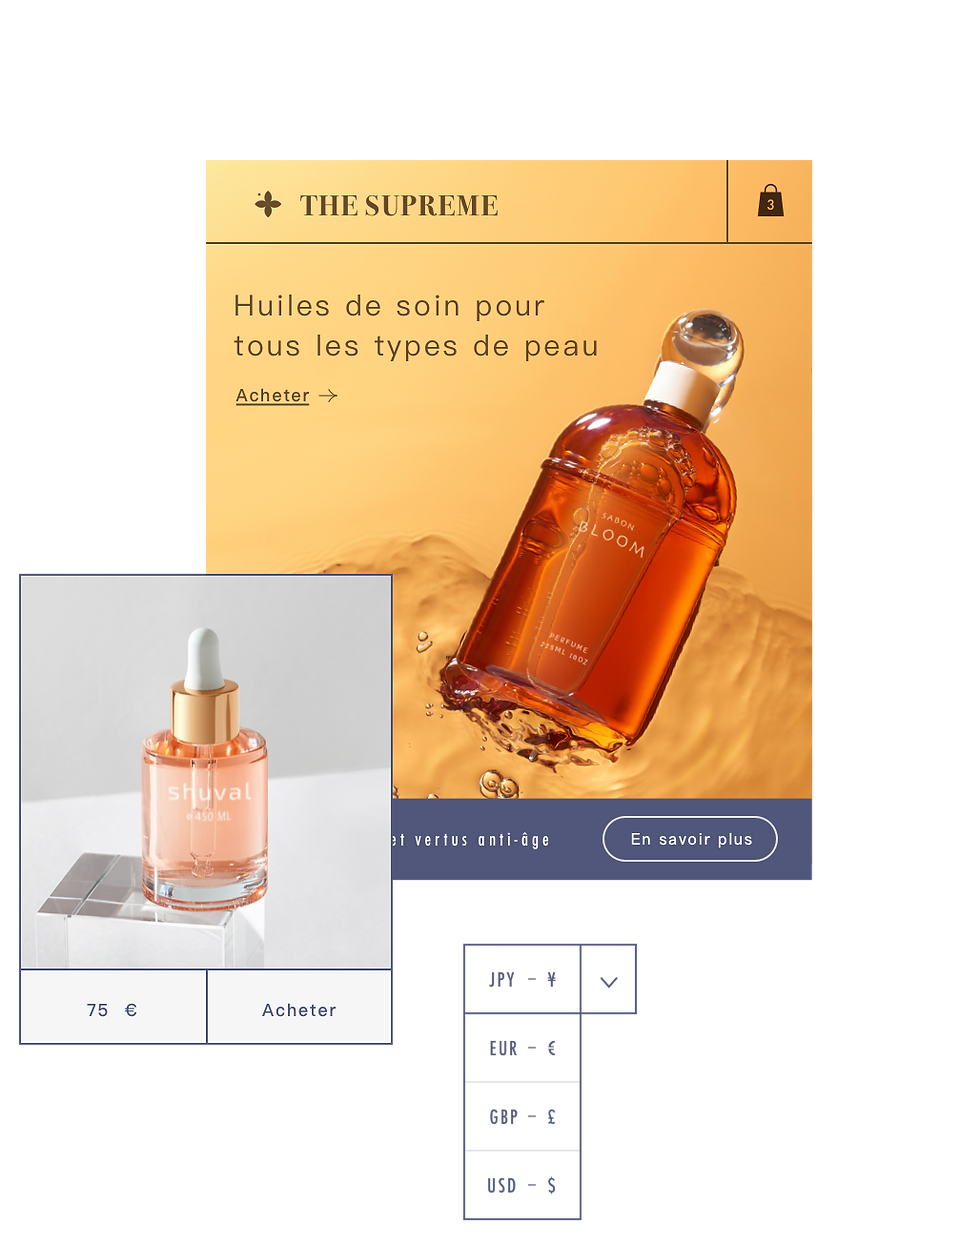 A French perfume store with a currency converter allowing customers to purchase products in their local currencies.